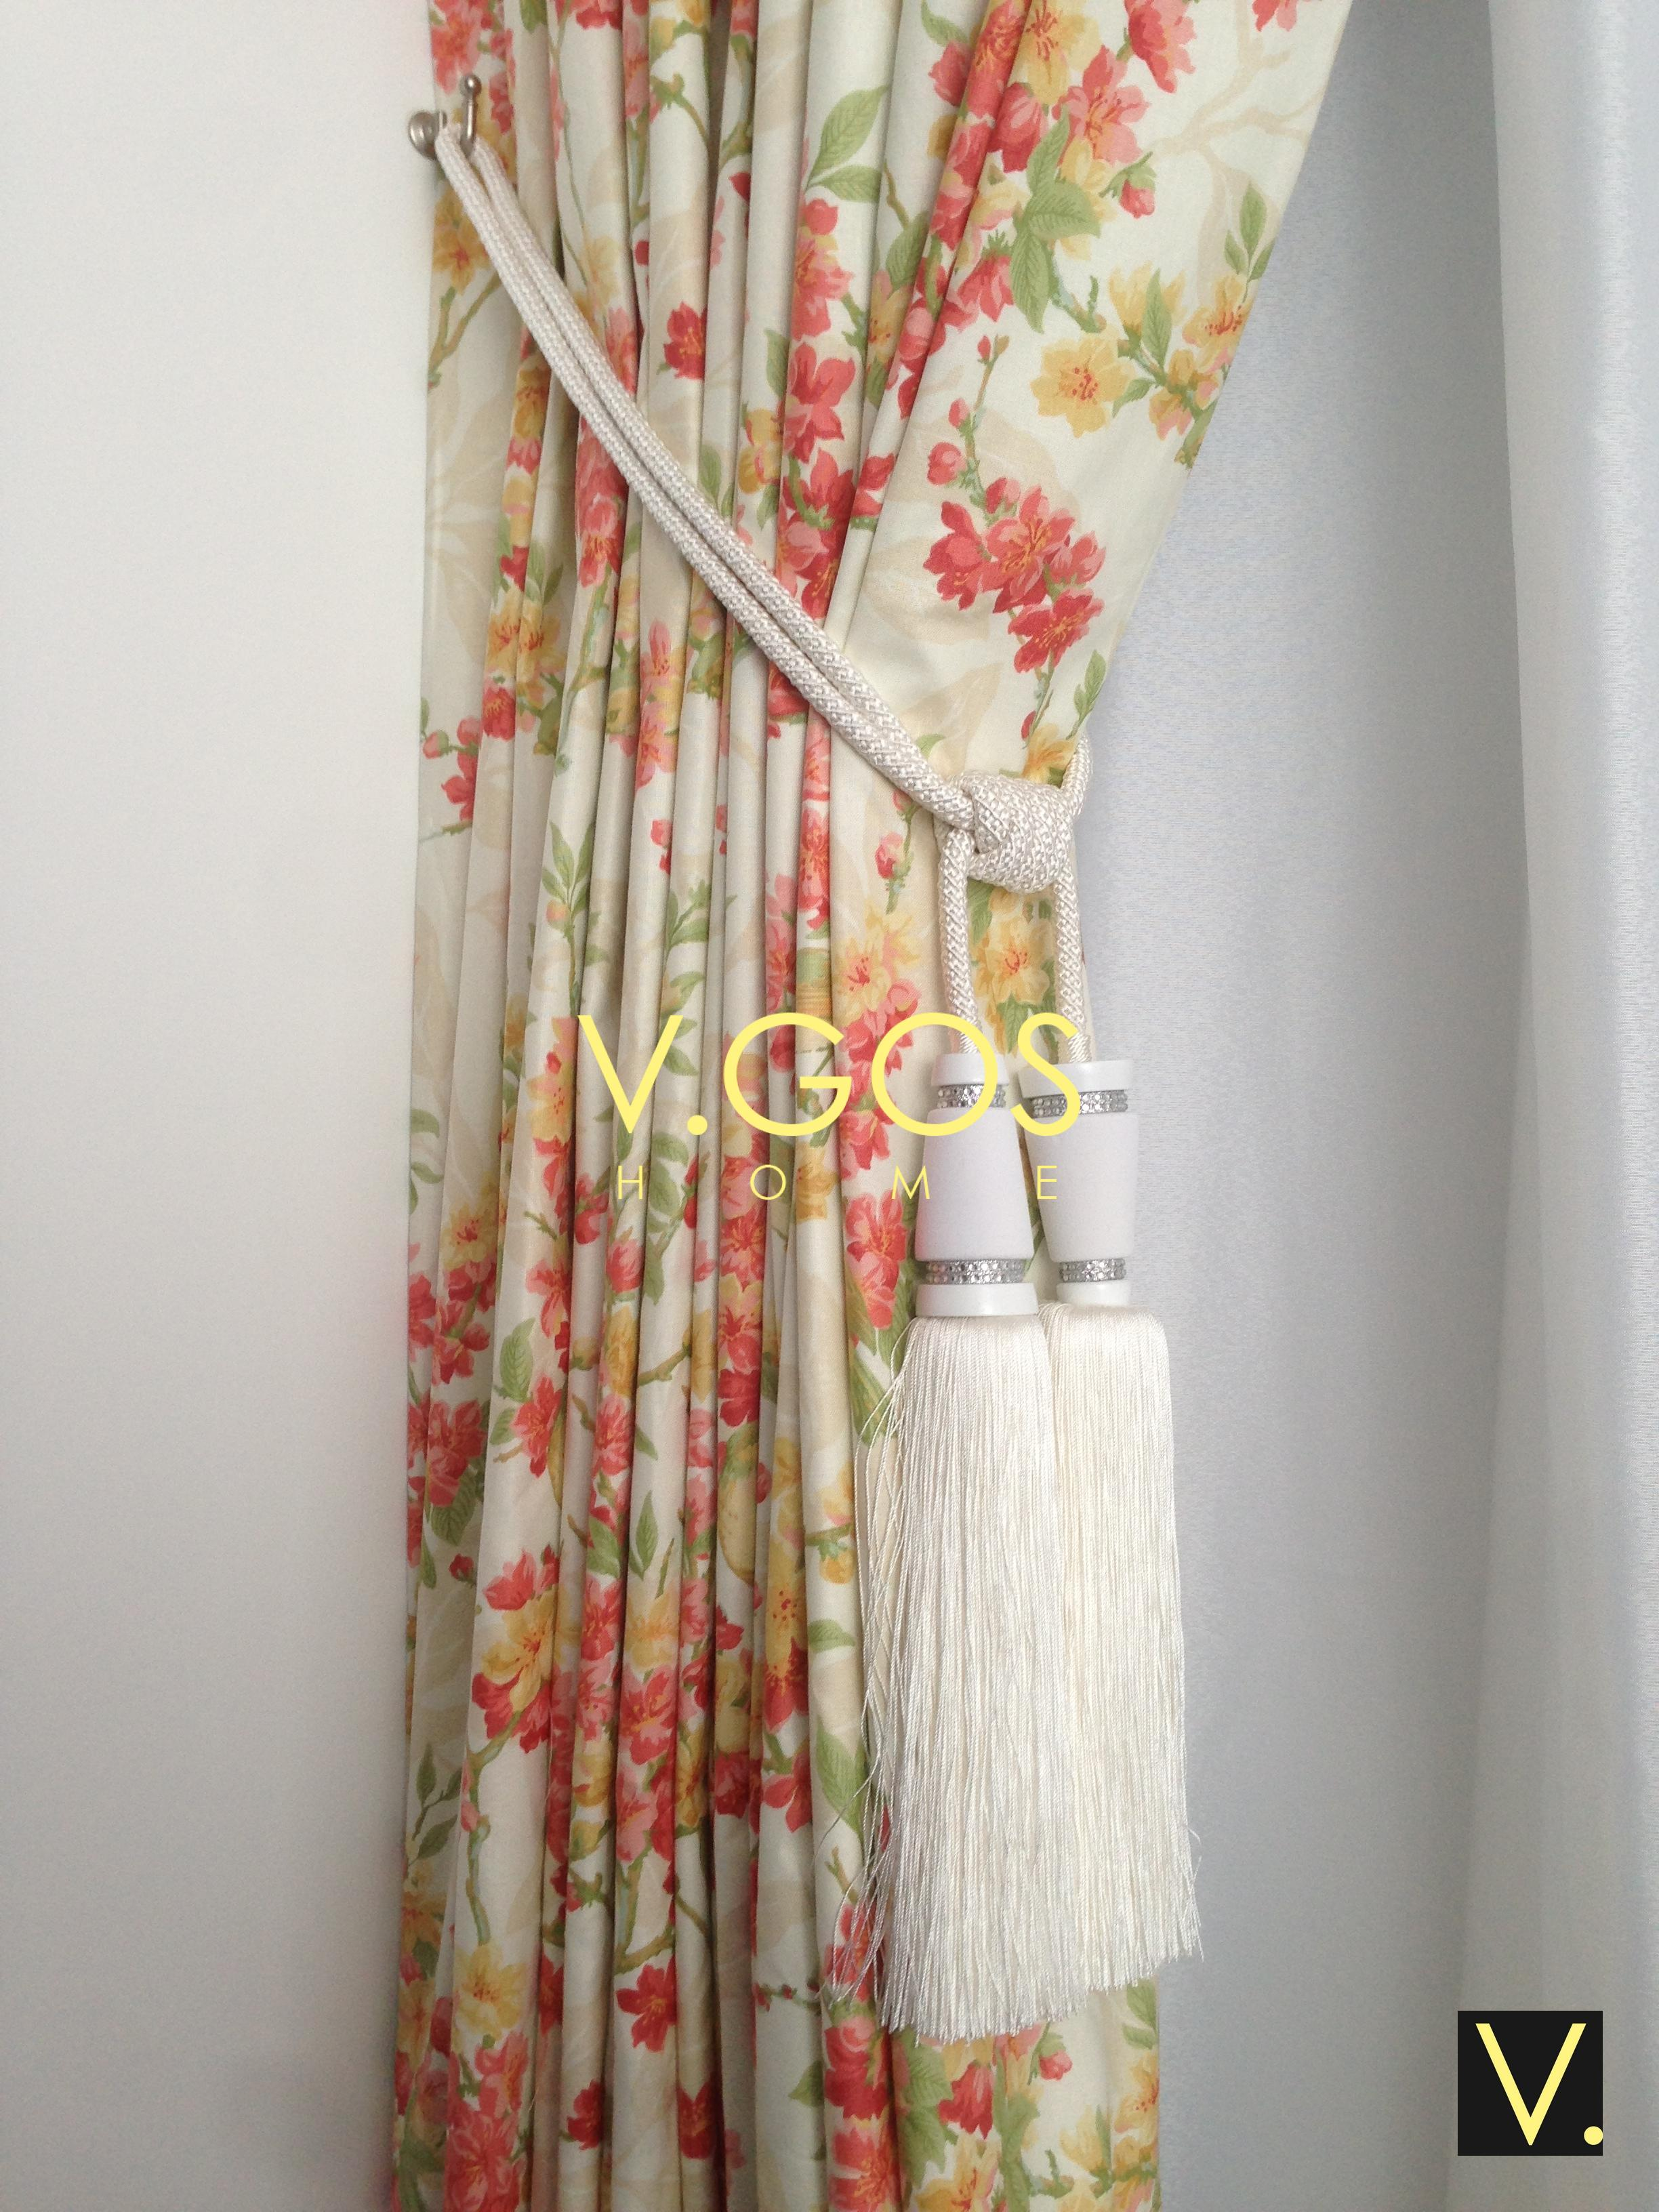 Four poster bed soft curtain , Day and night curtain, bed skirt and cushion curtain pelmet